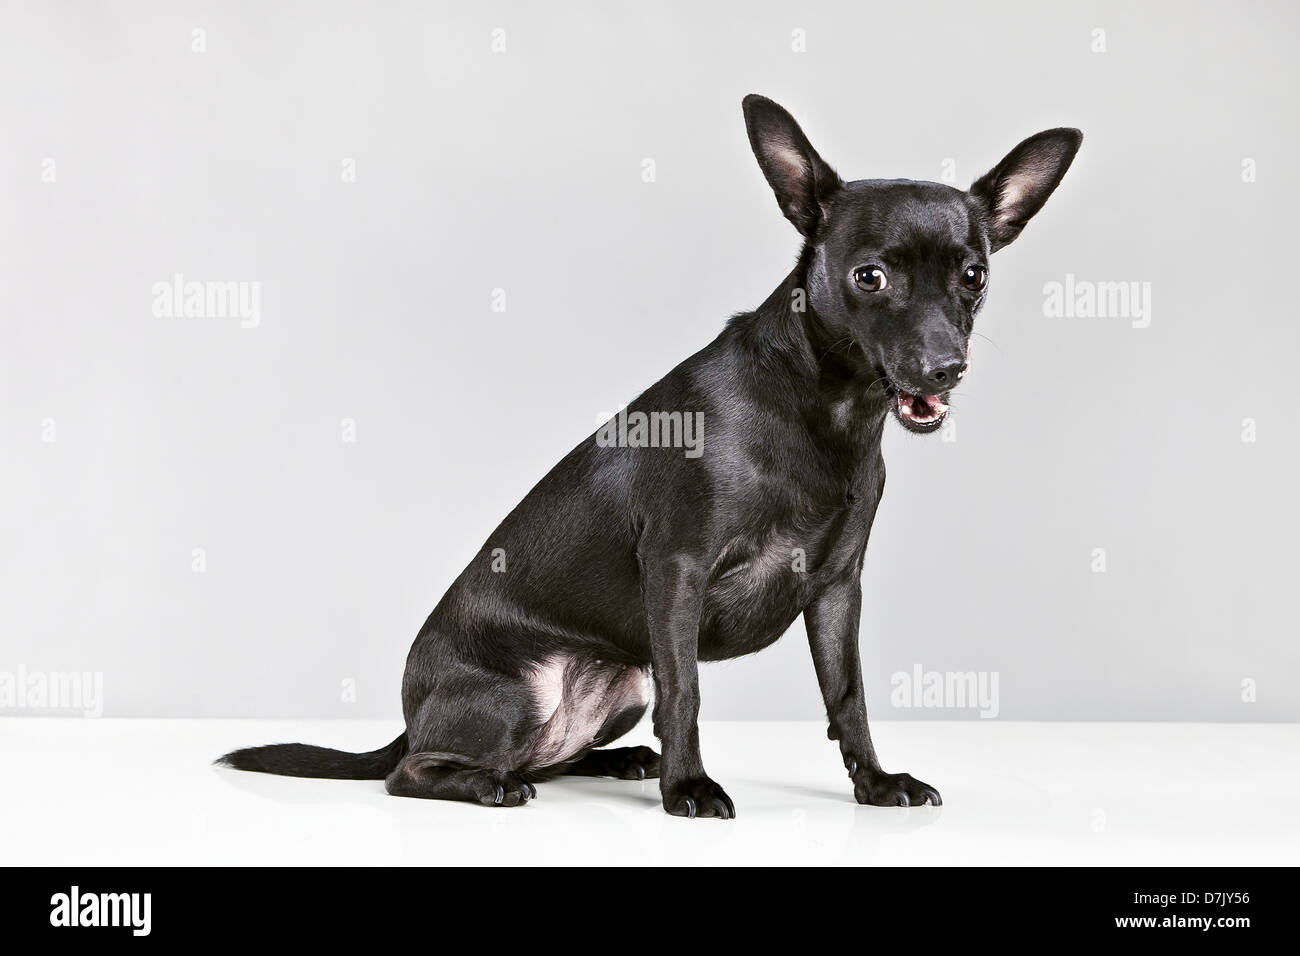 A small black chihuahua dog looking to camera against grey blackground - Stock Image